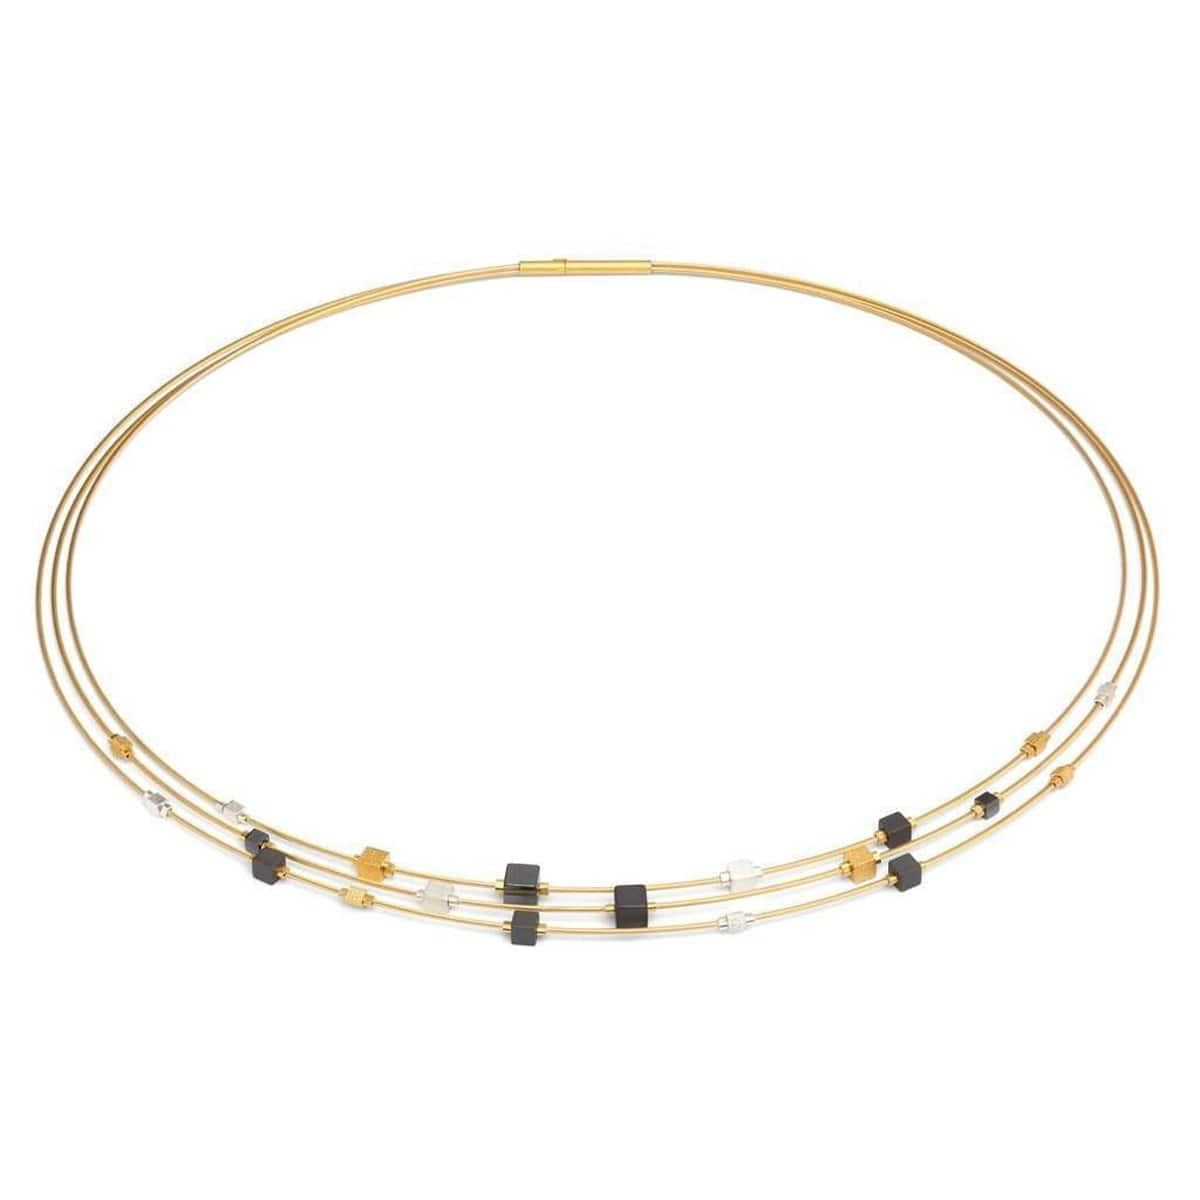 Lacubella Hematite Necklace - 85353276